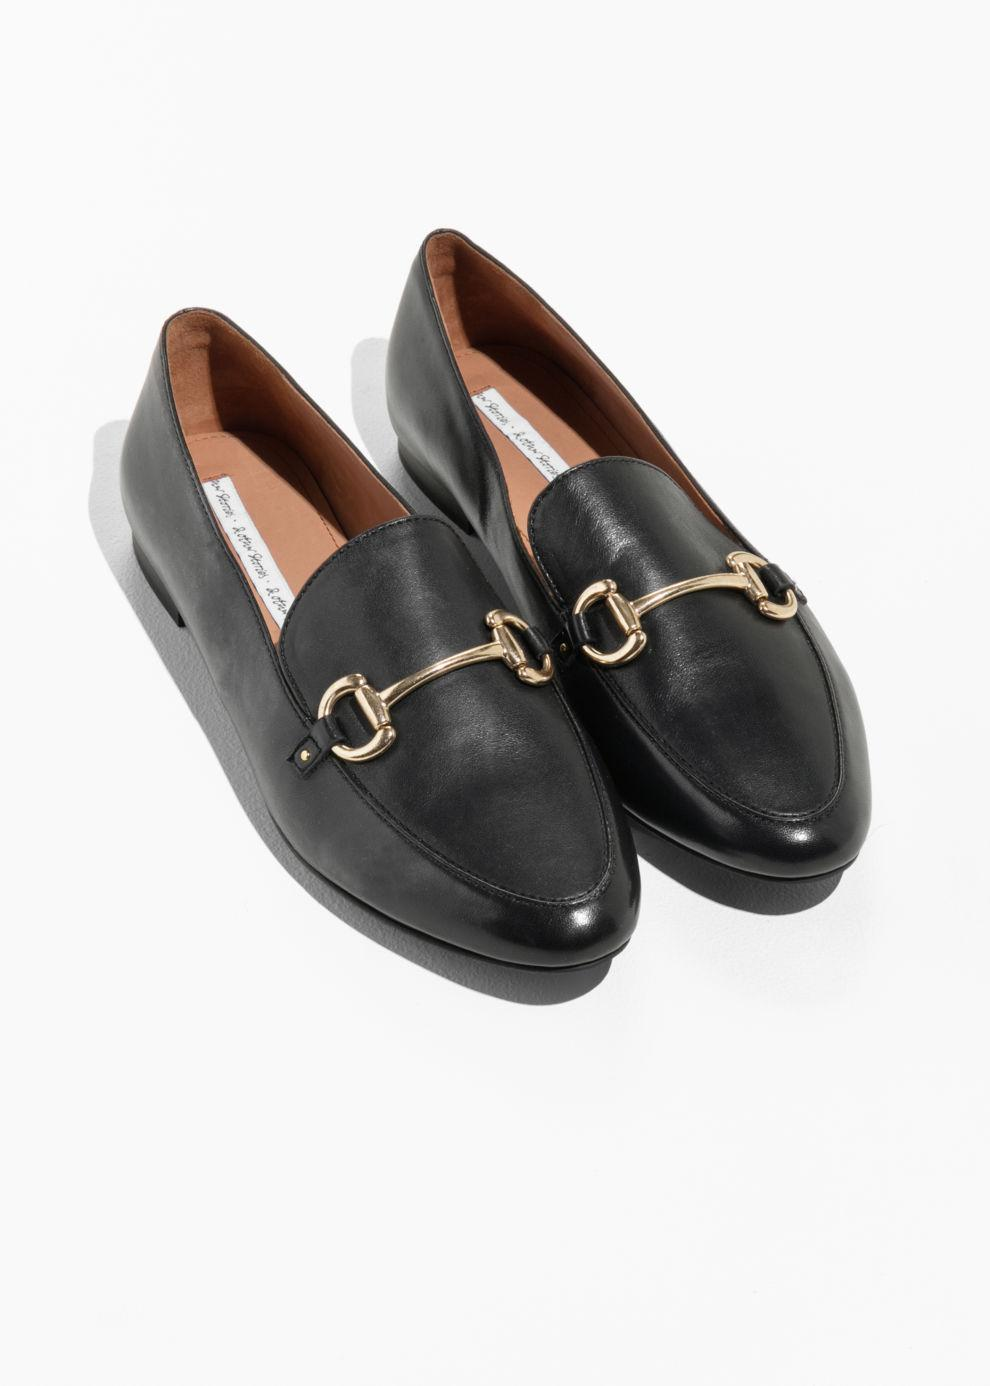 & OTHER STORIES Slip On Loafers QgdUYK5